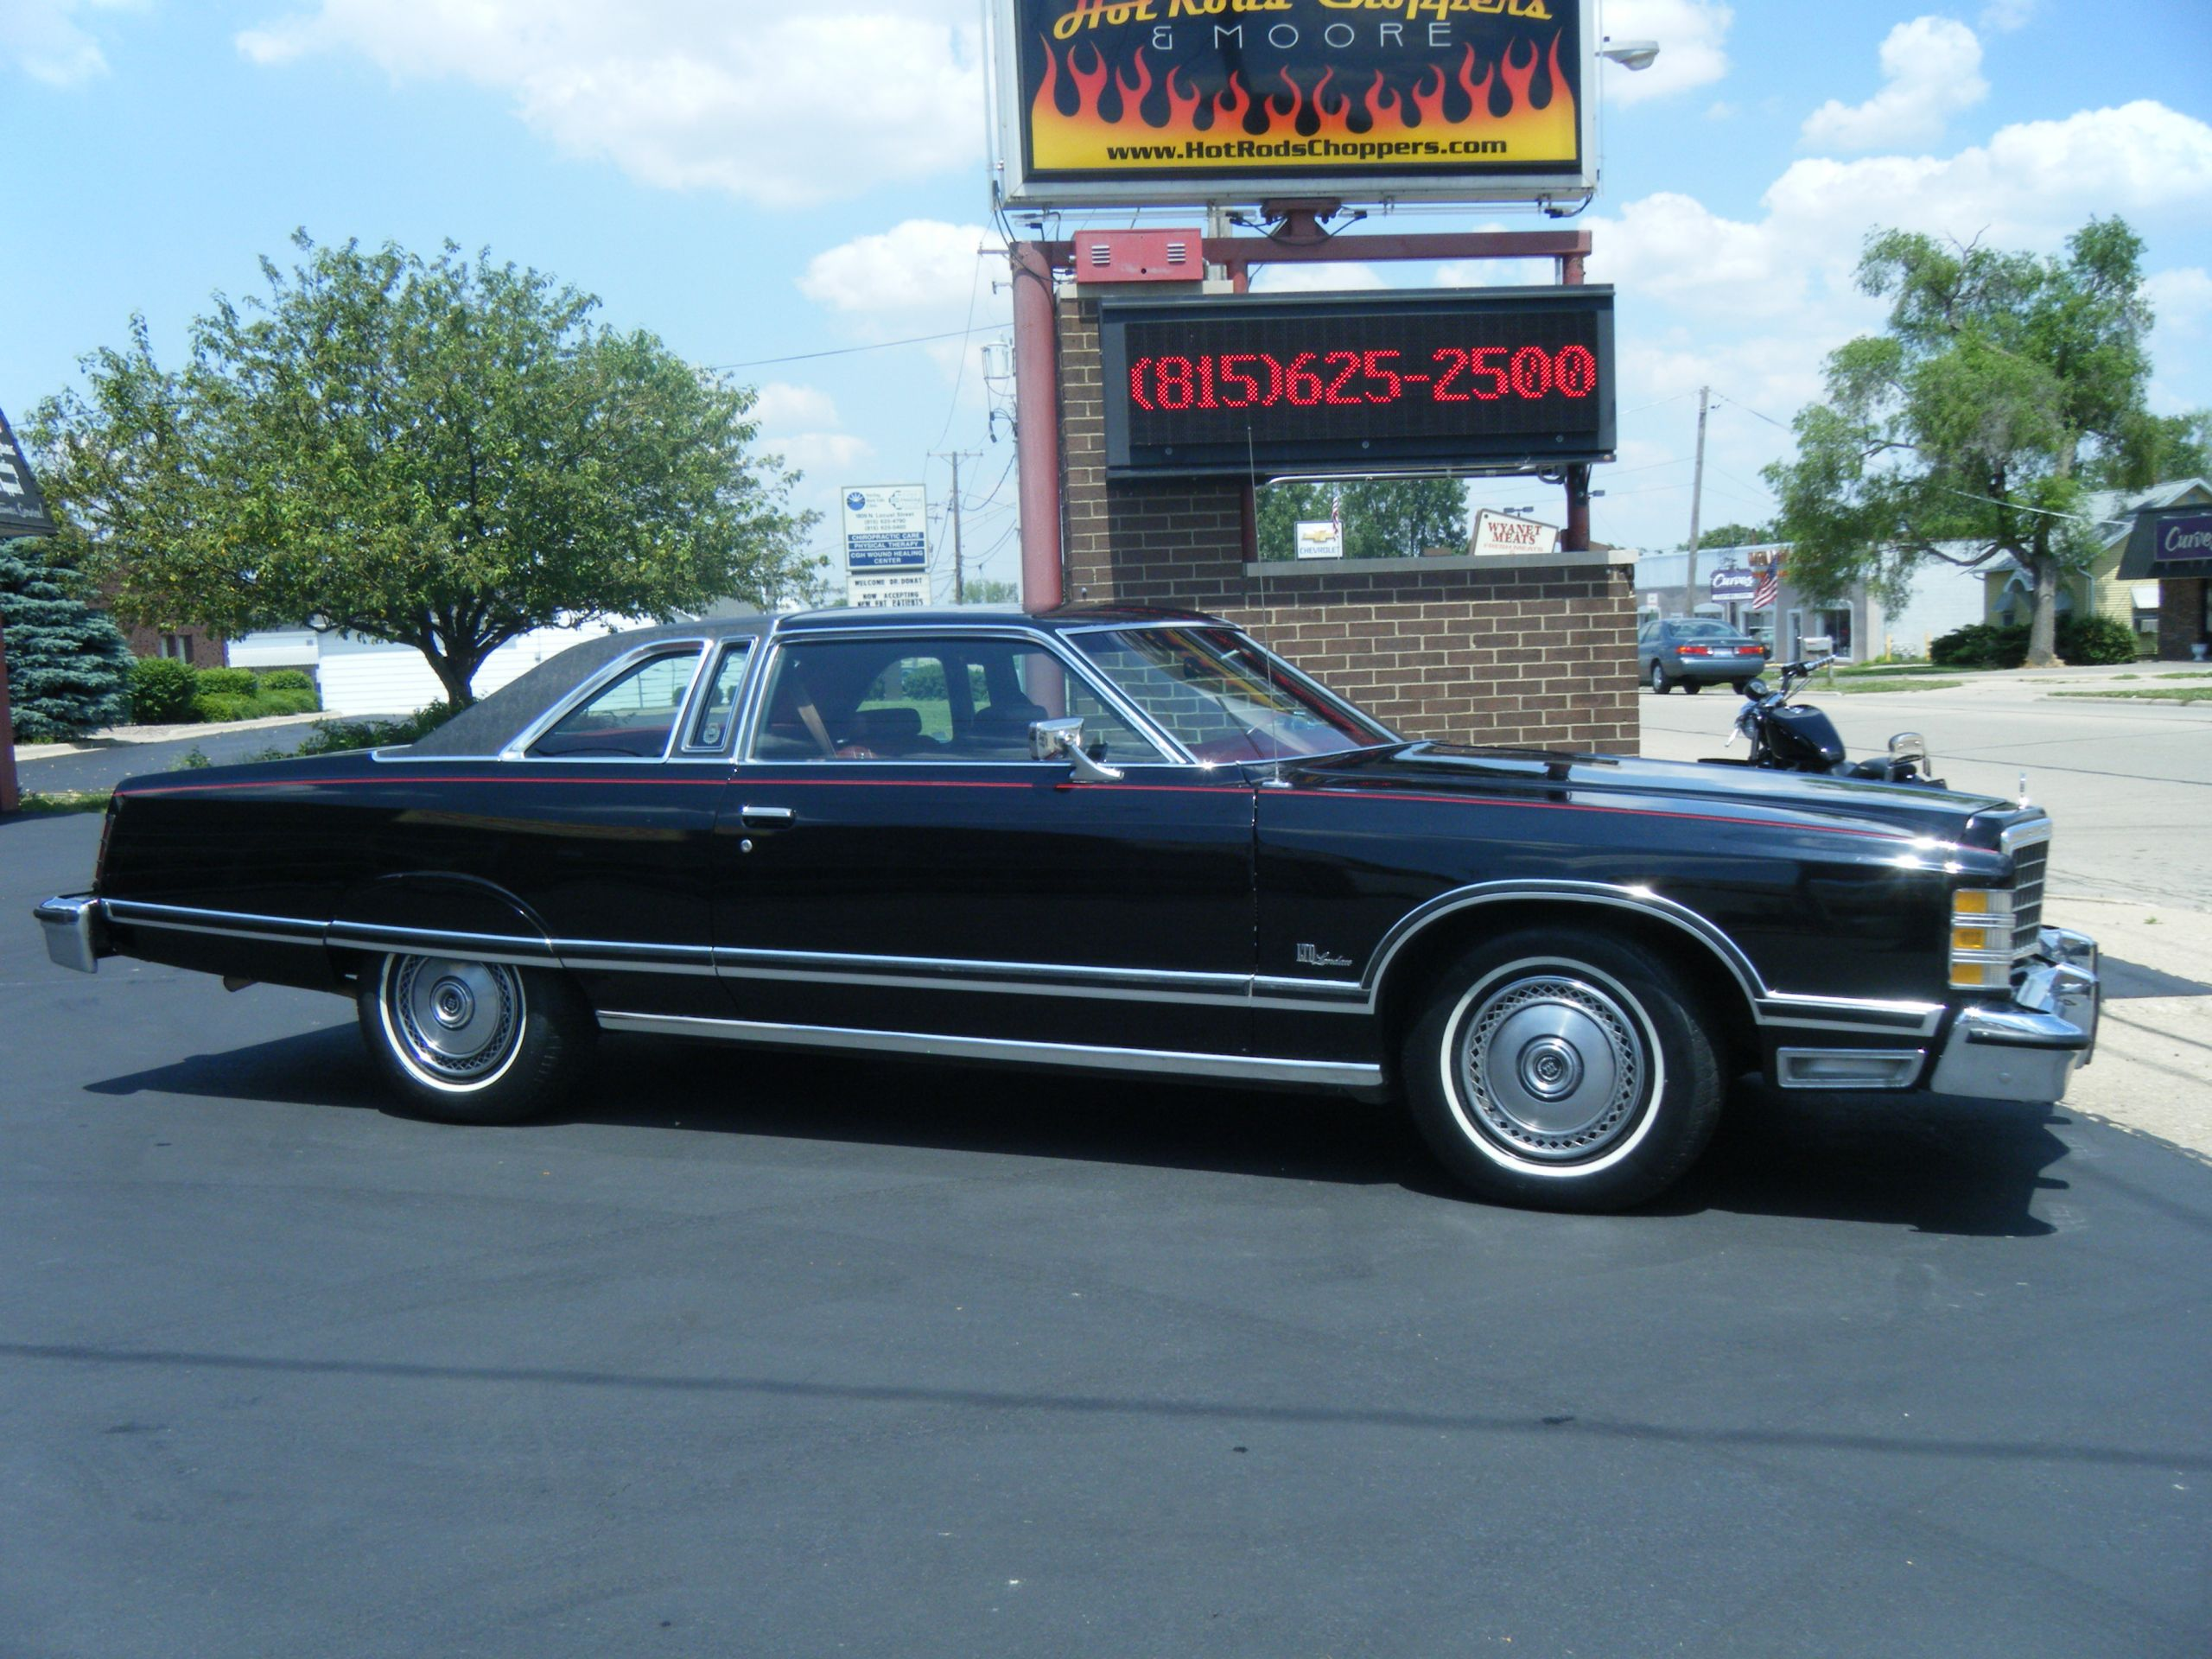 Lotus Chiropractic Awesome ford Ltd Landau Coupoe Picture 9 Reviews News Specs